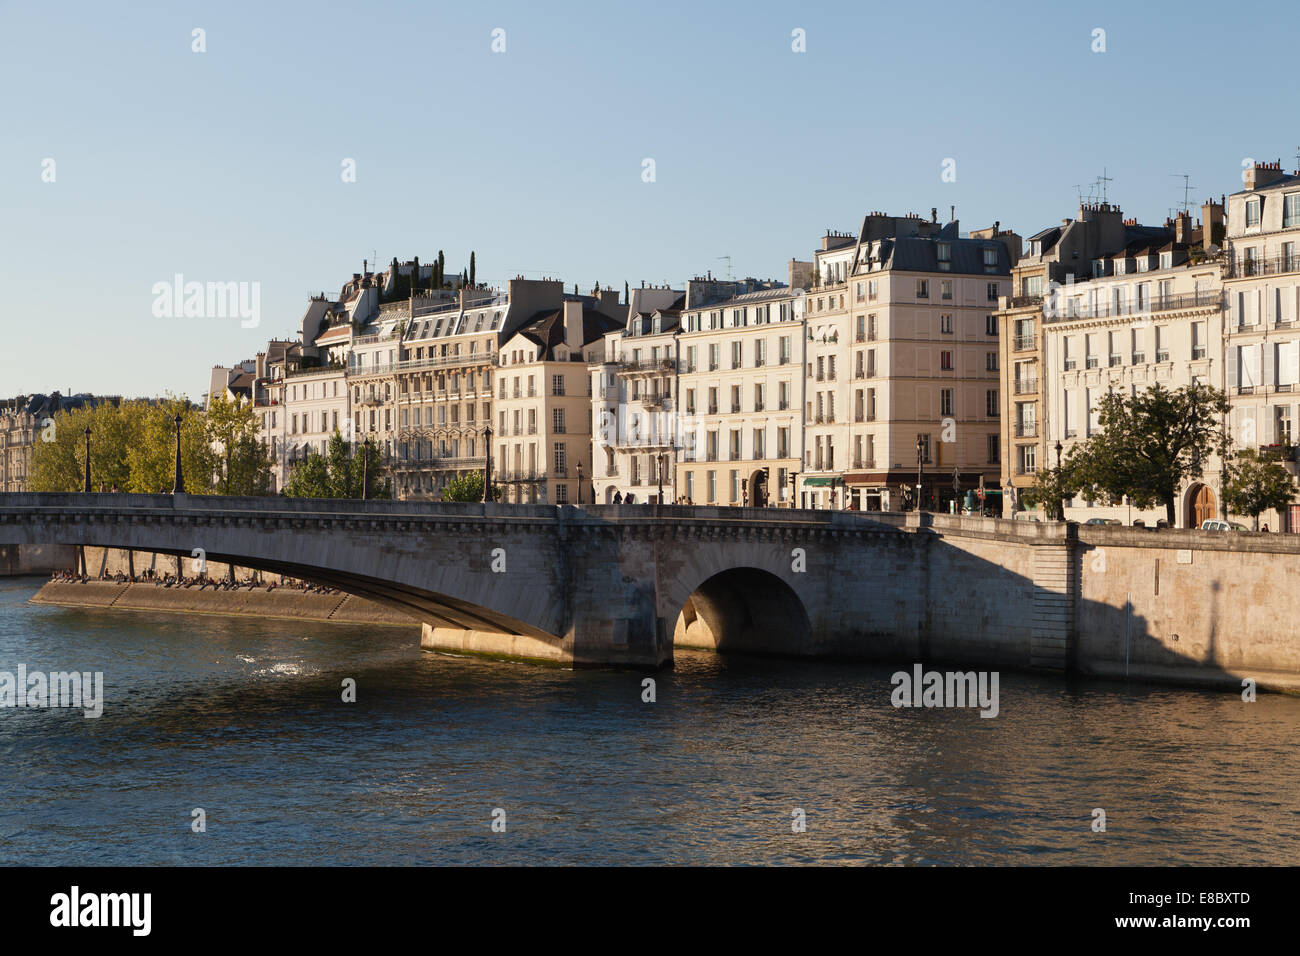 Le Pont De La Tournelle Paris France Banque D Images